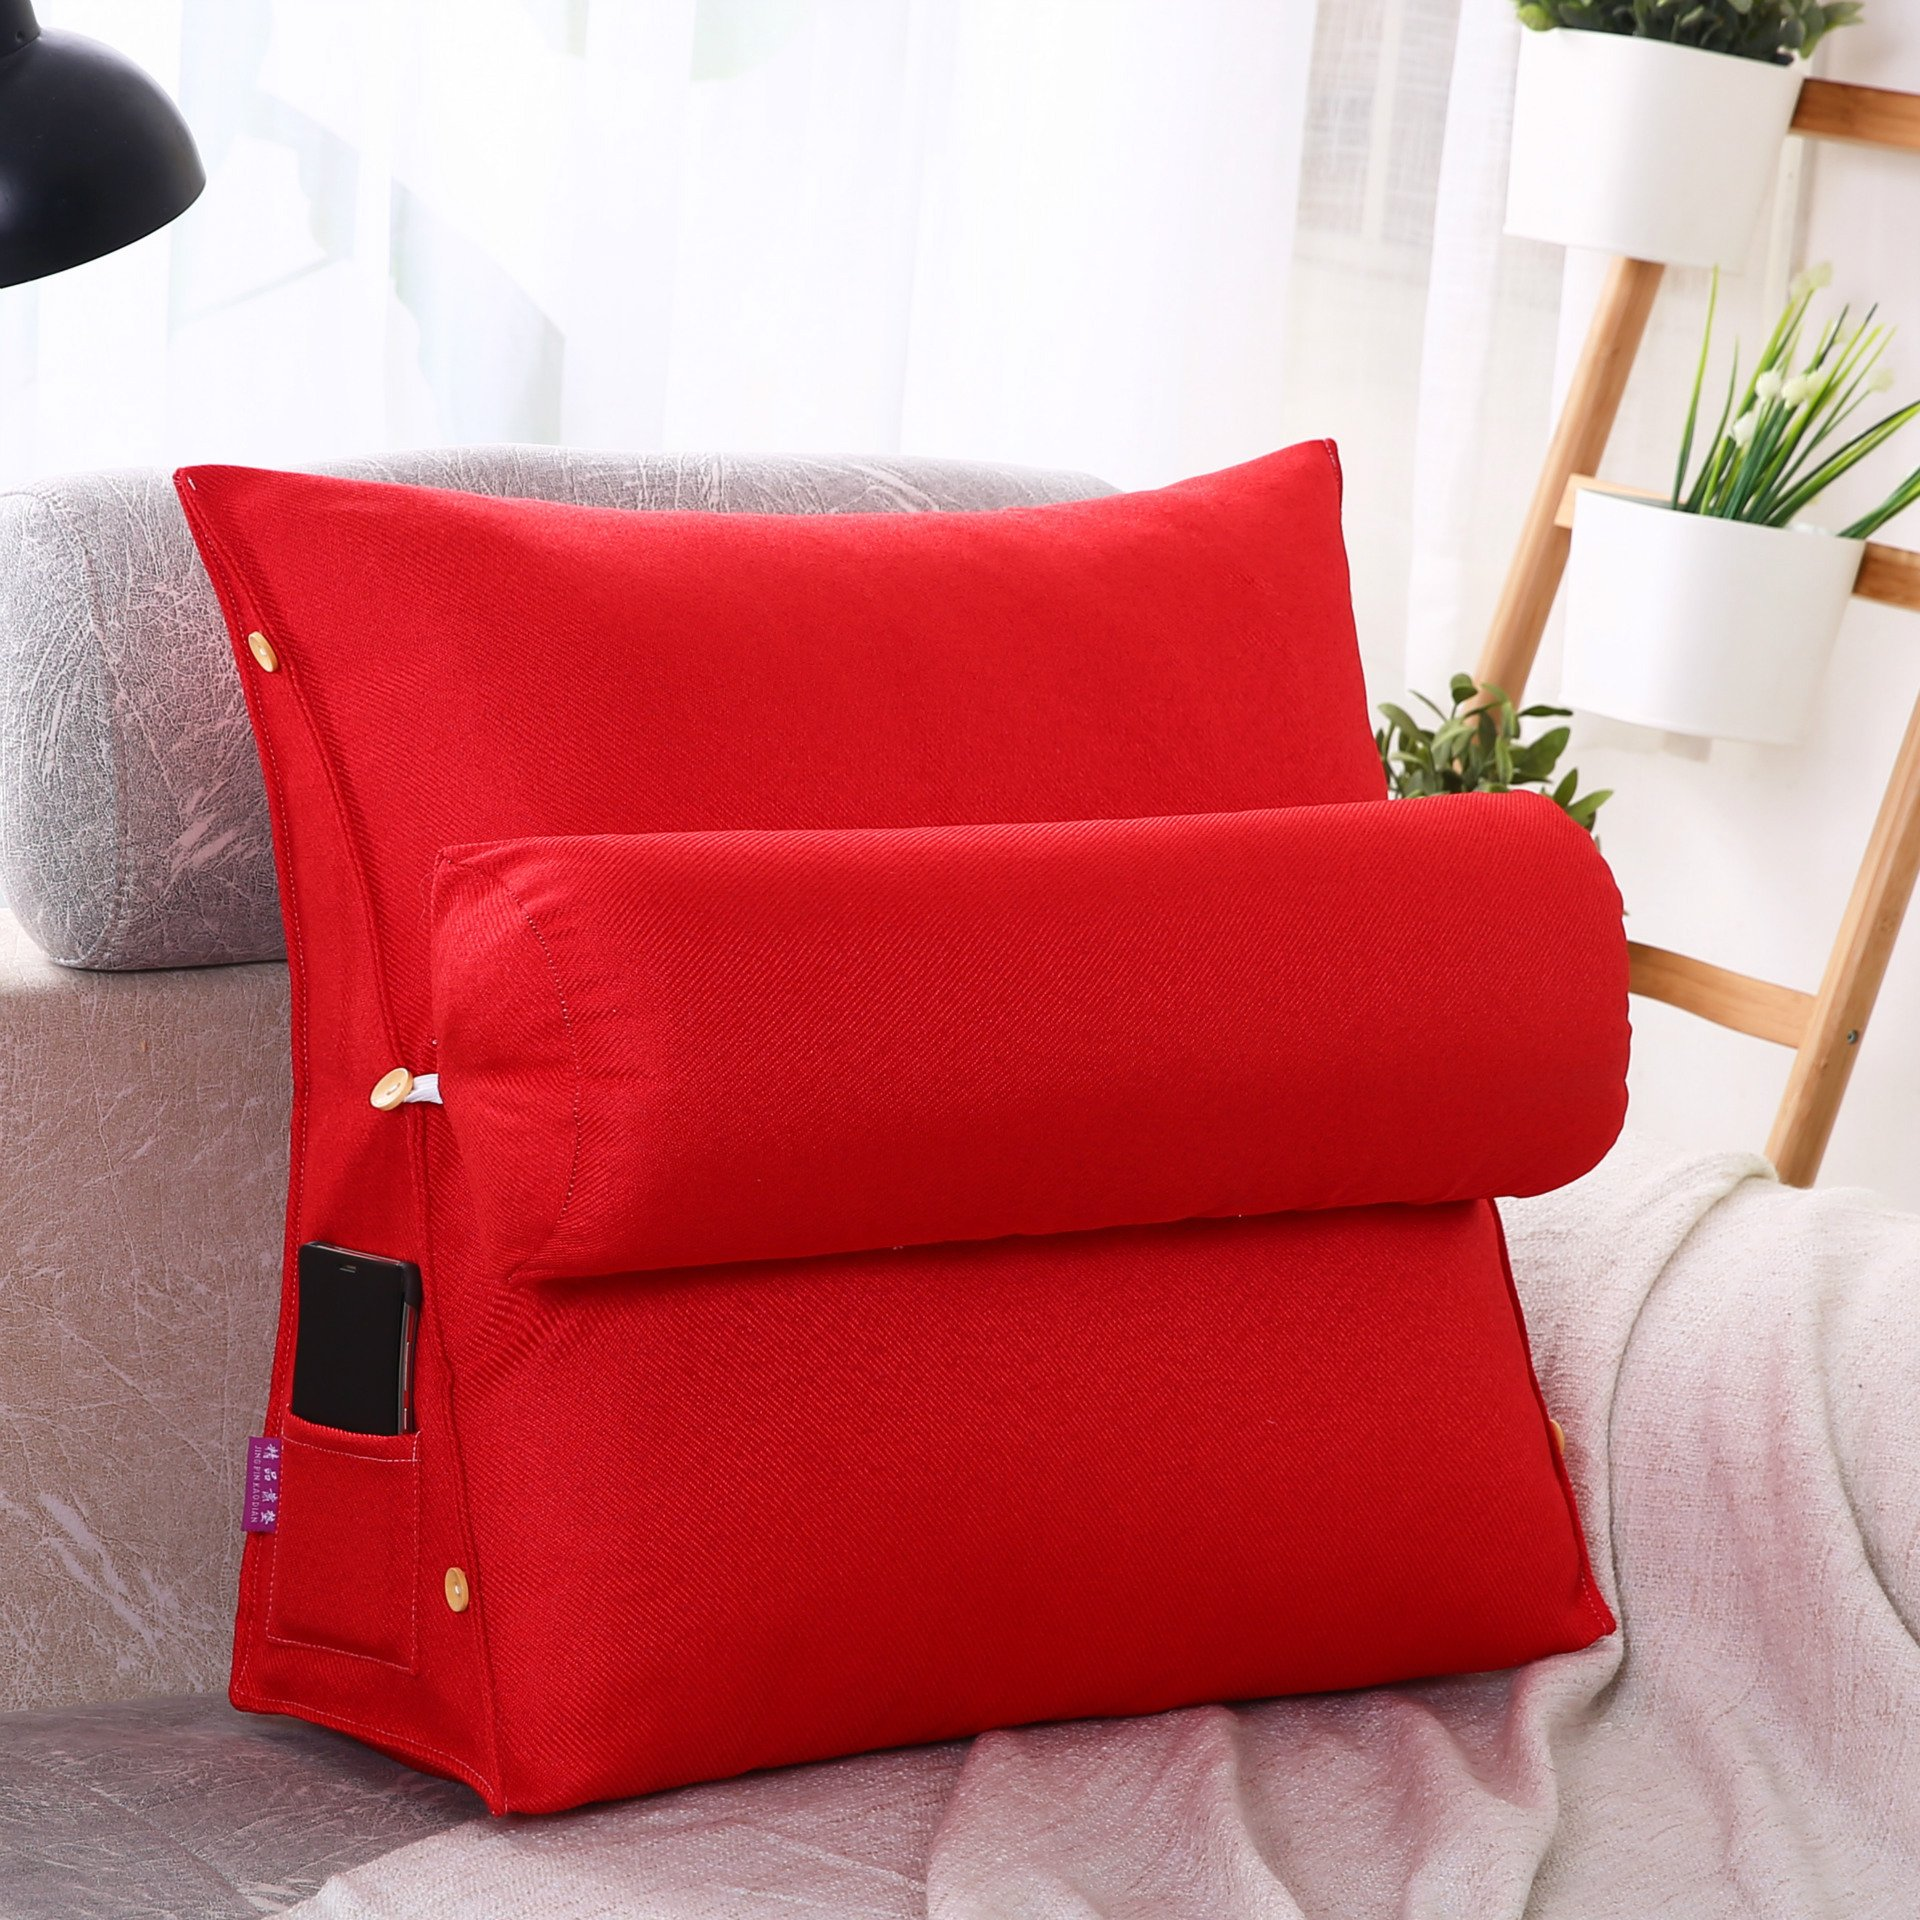 LUOTIANLANG Office sofa cushion pillow waist pillow for pregnant women Home Furnishing ornaments triangle comfortable cushion,Red,50x180x20cm